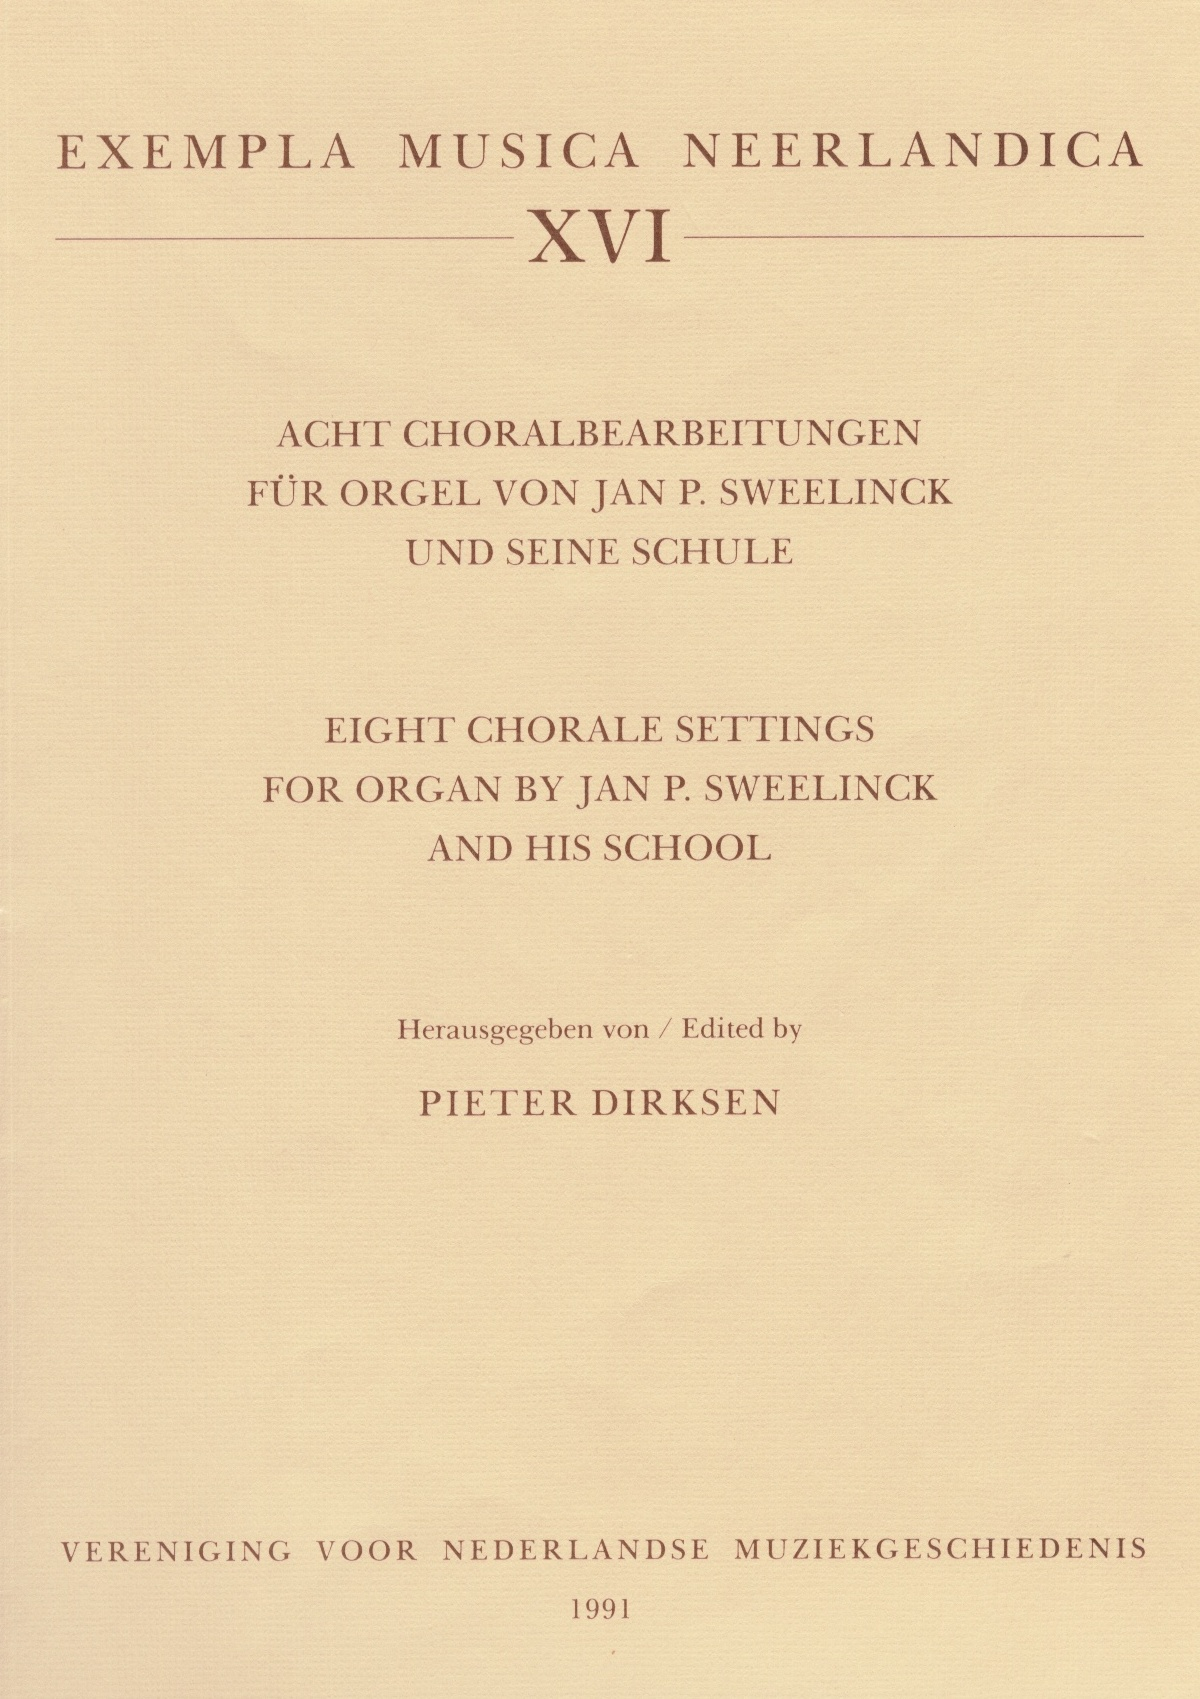 Eight Chorale Settings by Jan P. Sweelinck and his School